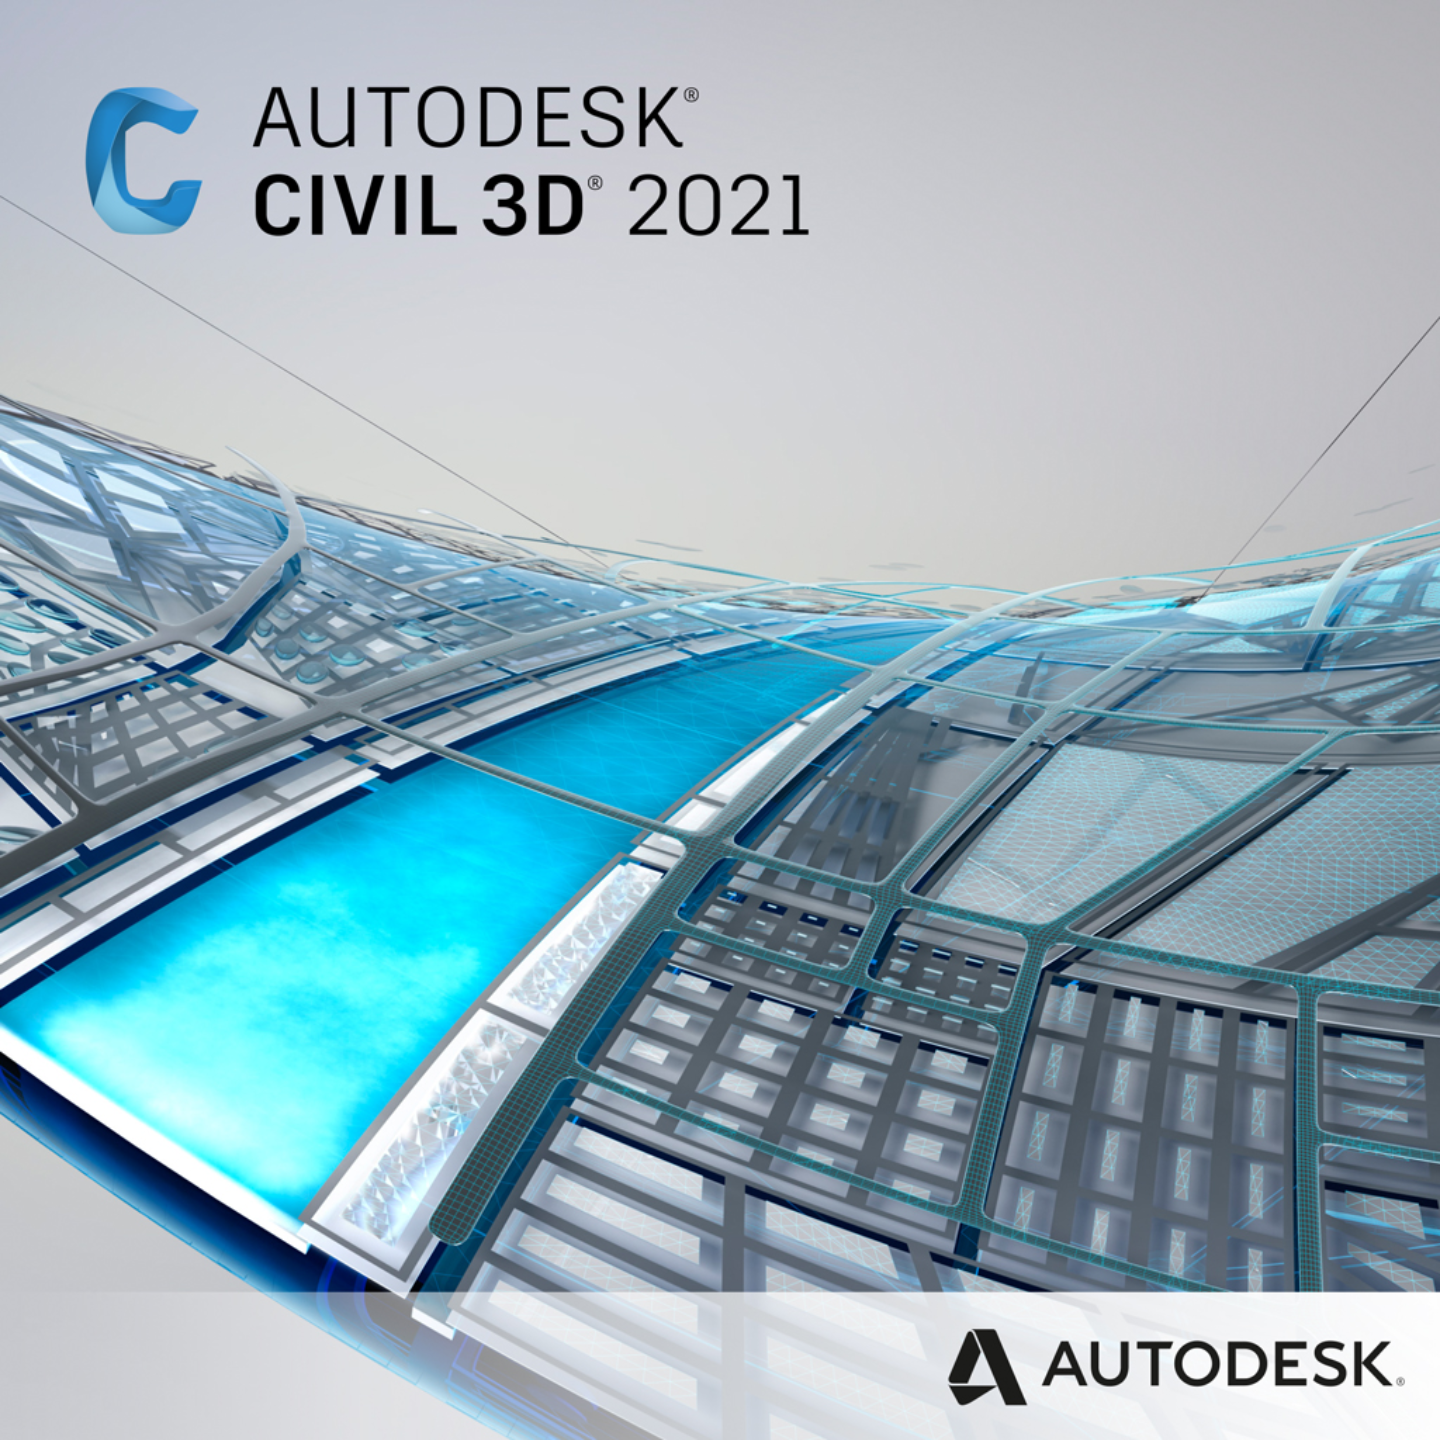 Autodesk AutoCAD Civil 3D 2021 Commercial (3-Years Subscription)